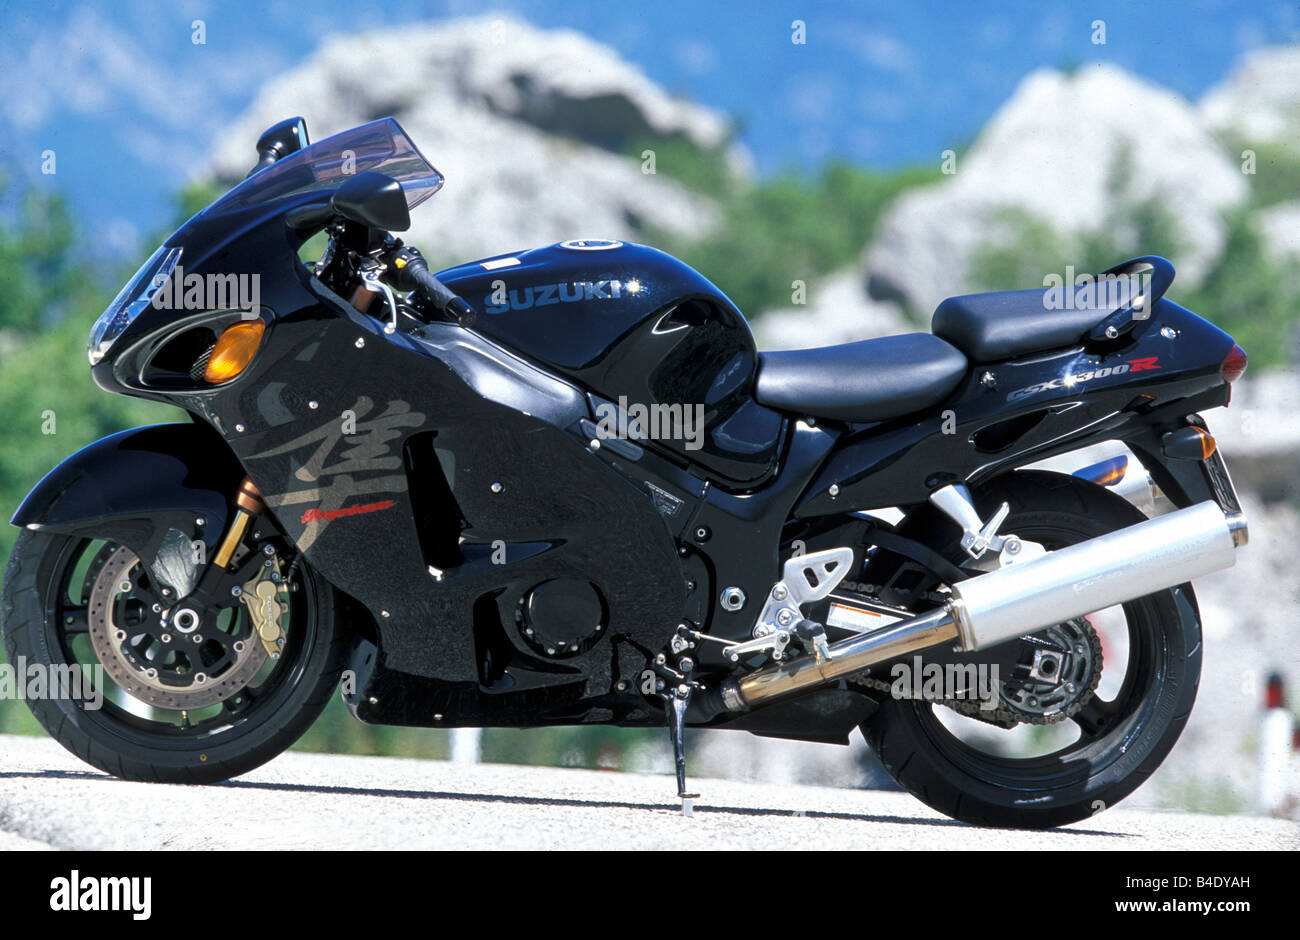 engine cycle, Sports motor cycle, Sportsman, Suzuki GSX 1300 R Hayabusa, black, model year 2003, standing, upholding, Stock Photo